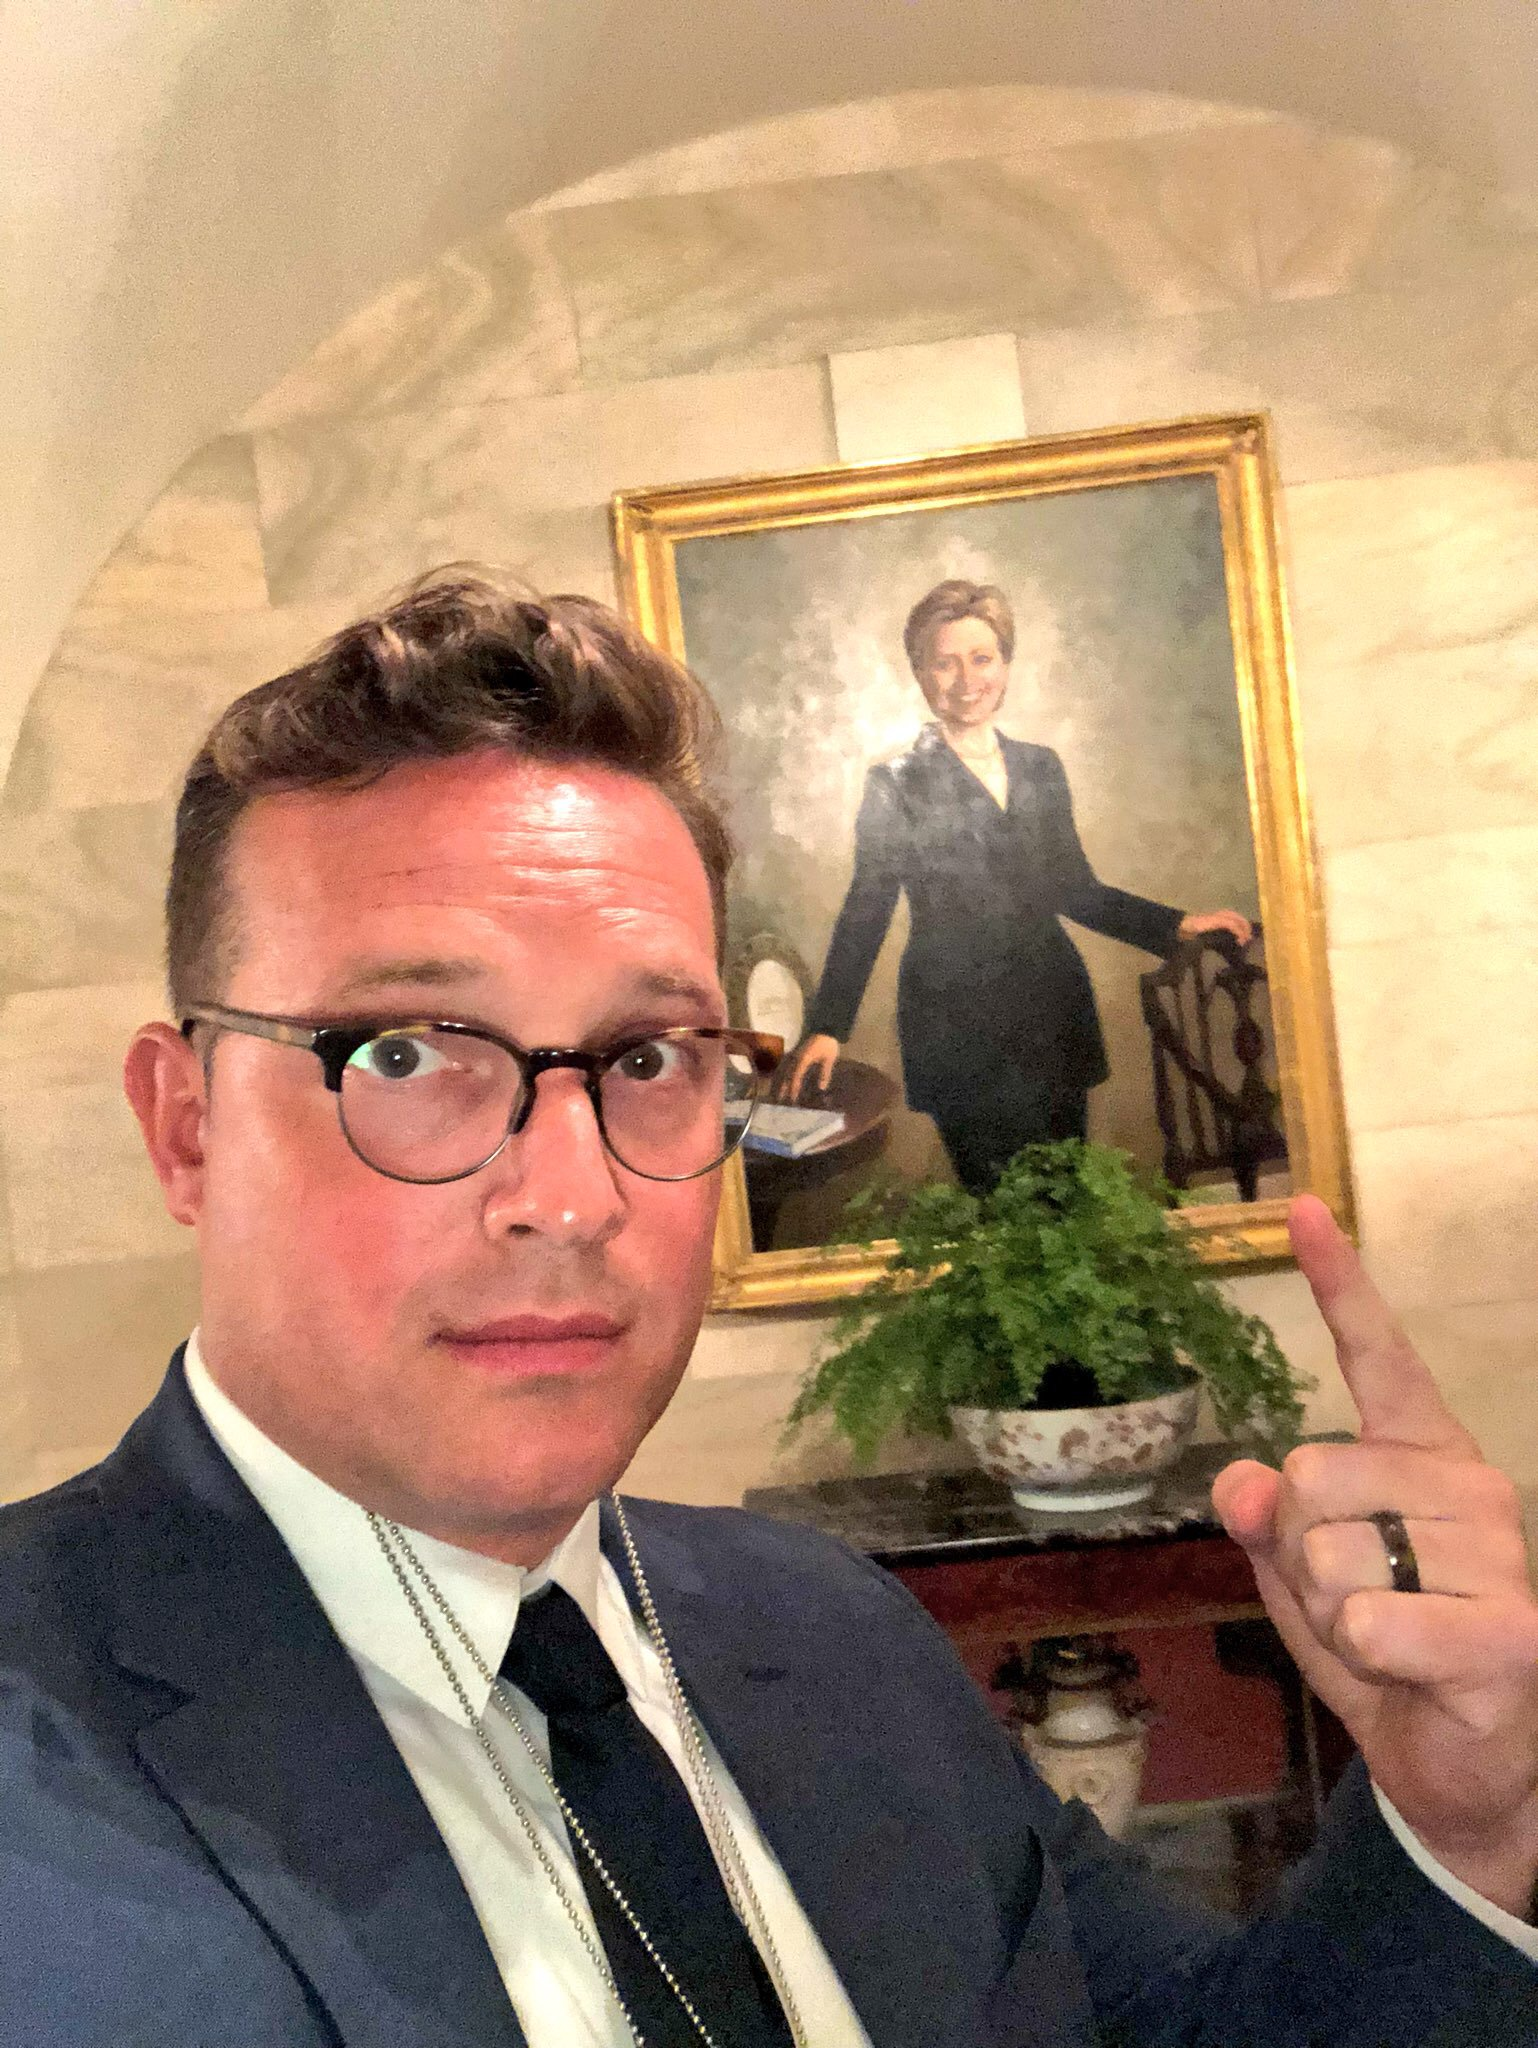 Benny takes a selfie by the Hillary portrait during the journey to the SCOTUS annoucement. Photo credit to Benny Johnson at The Daily Caller.